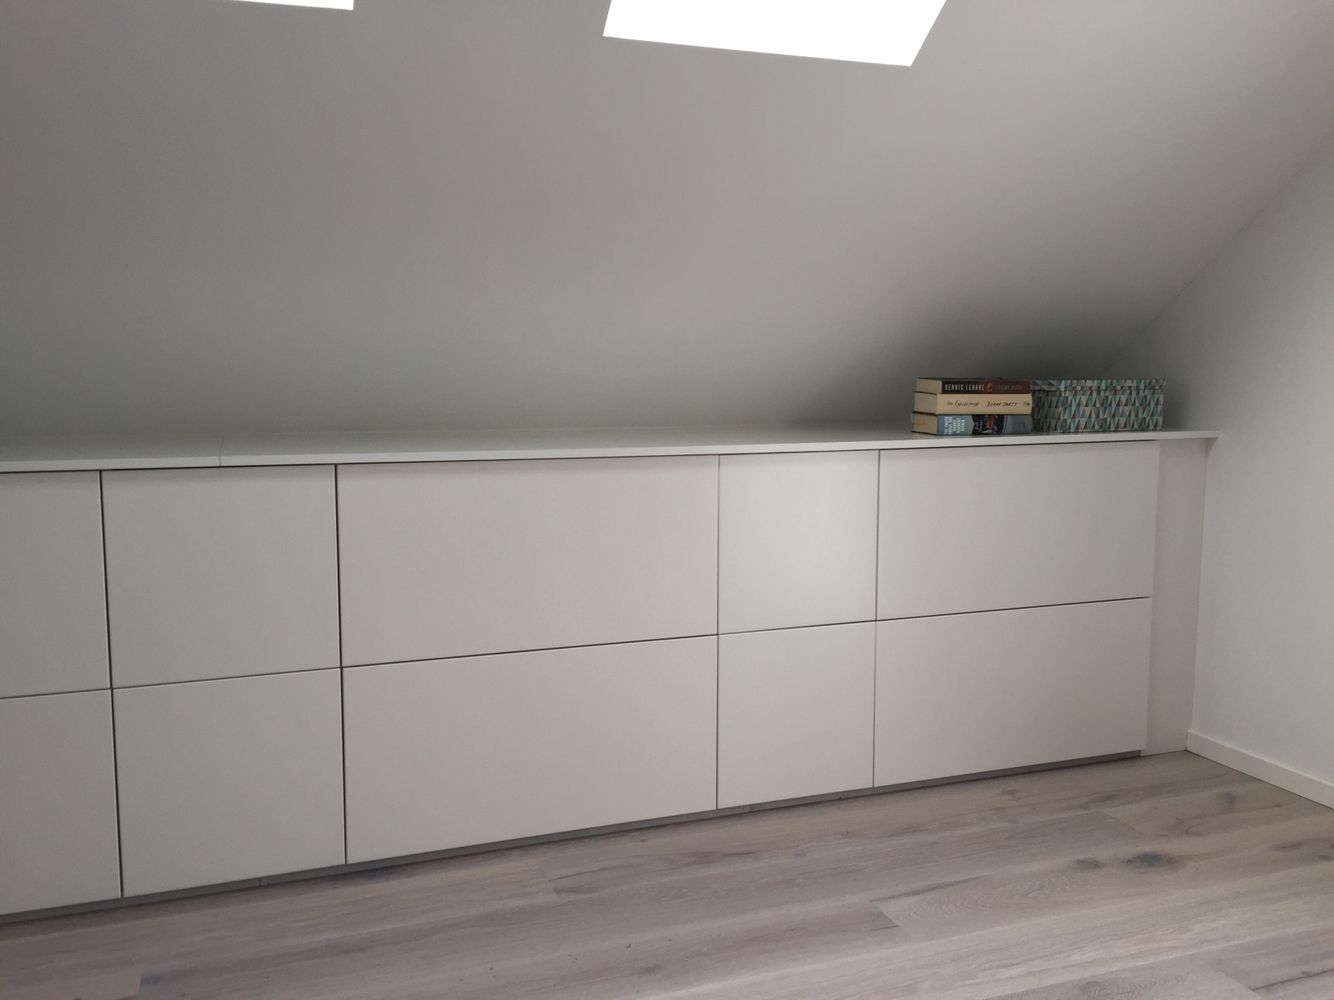 Rangement Combles Ikea Ikea Kitchen Storage As Drawers For Clothes Etc In Out New Attic